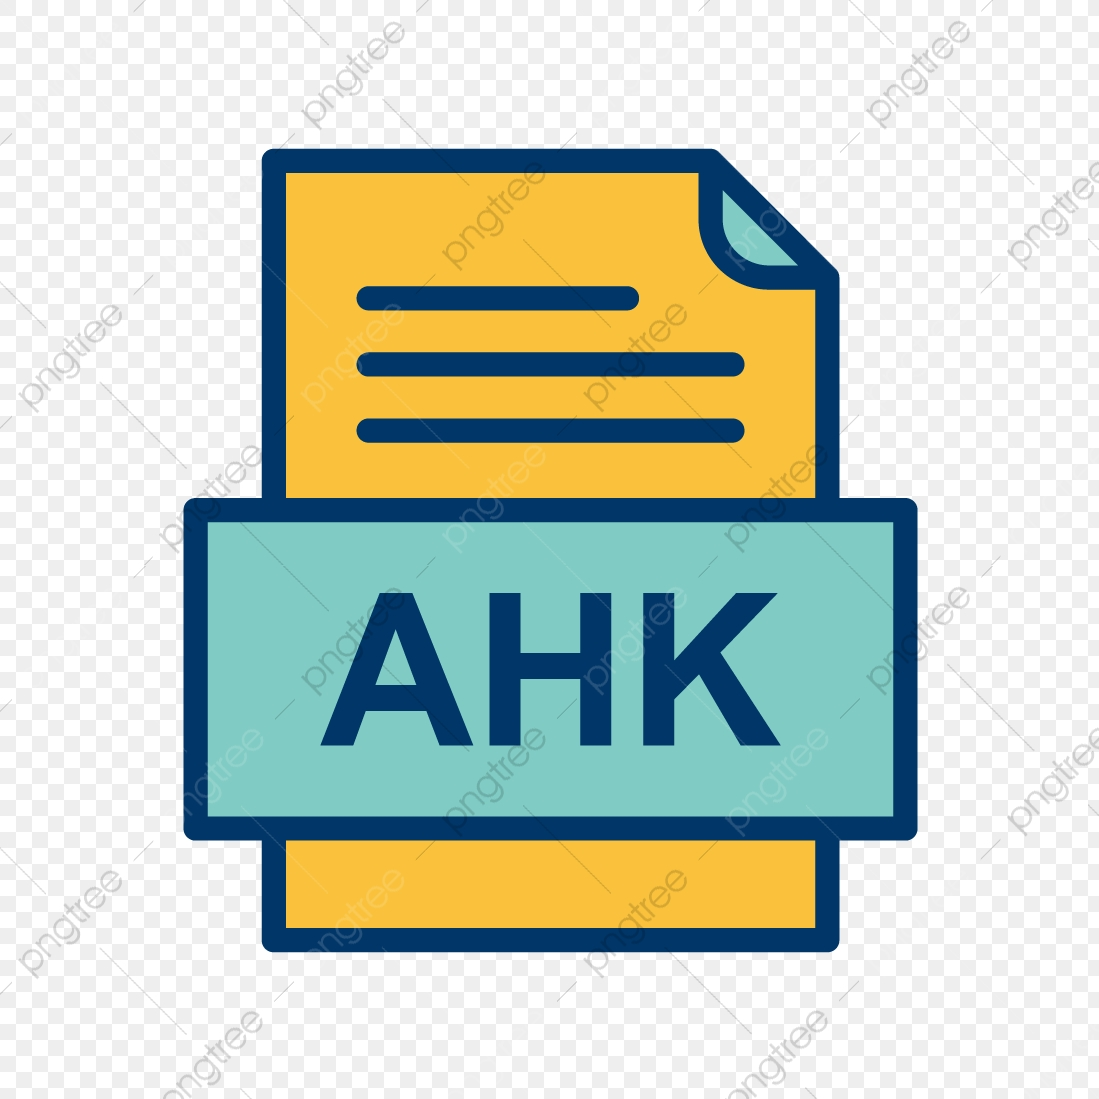 Ahk File Document Icon, Ahk, Document, File PNG and Vector